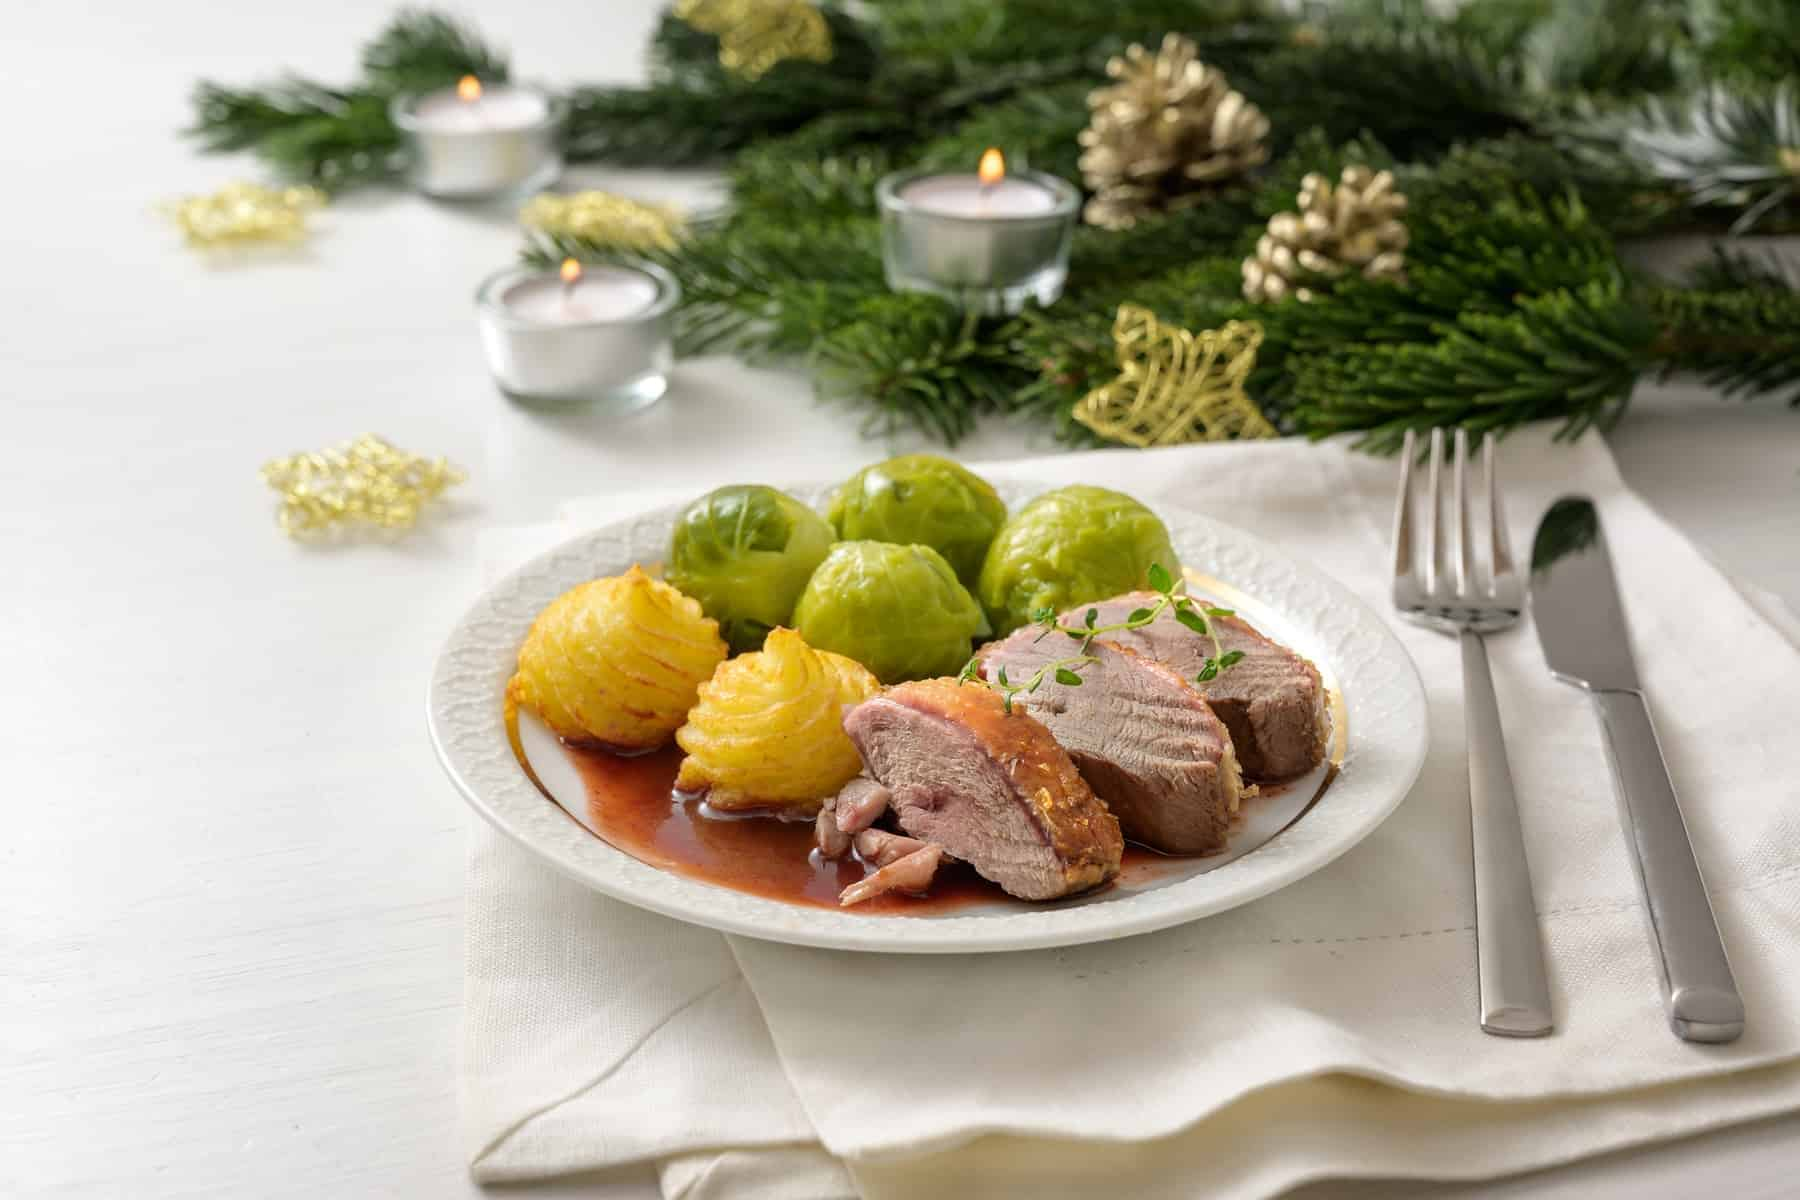 Seared duck breast with brussels sprout, duchess potatoes and sauce as a festive dinner, served on a white wooden table with candles